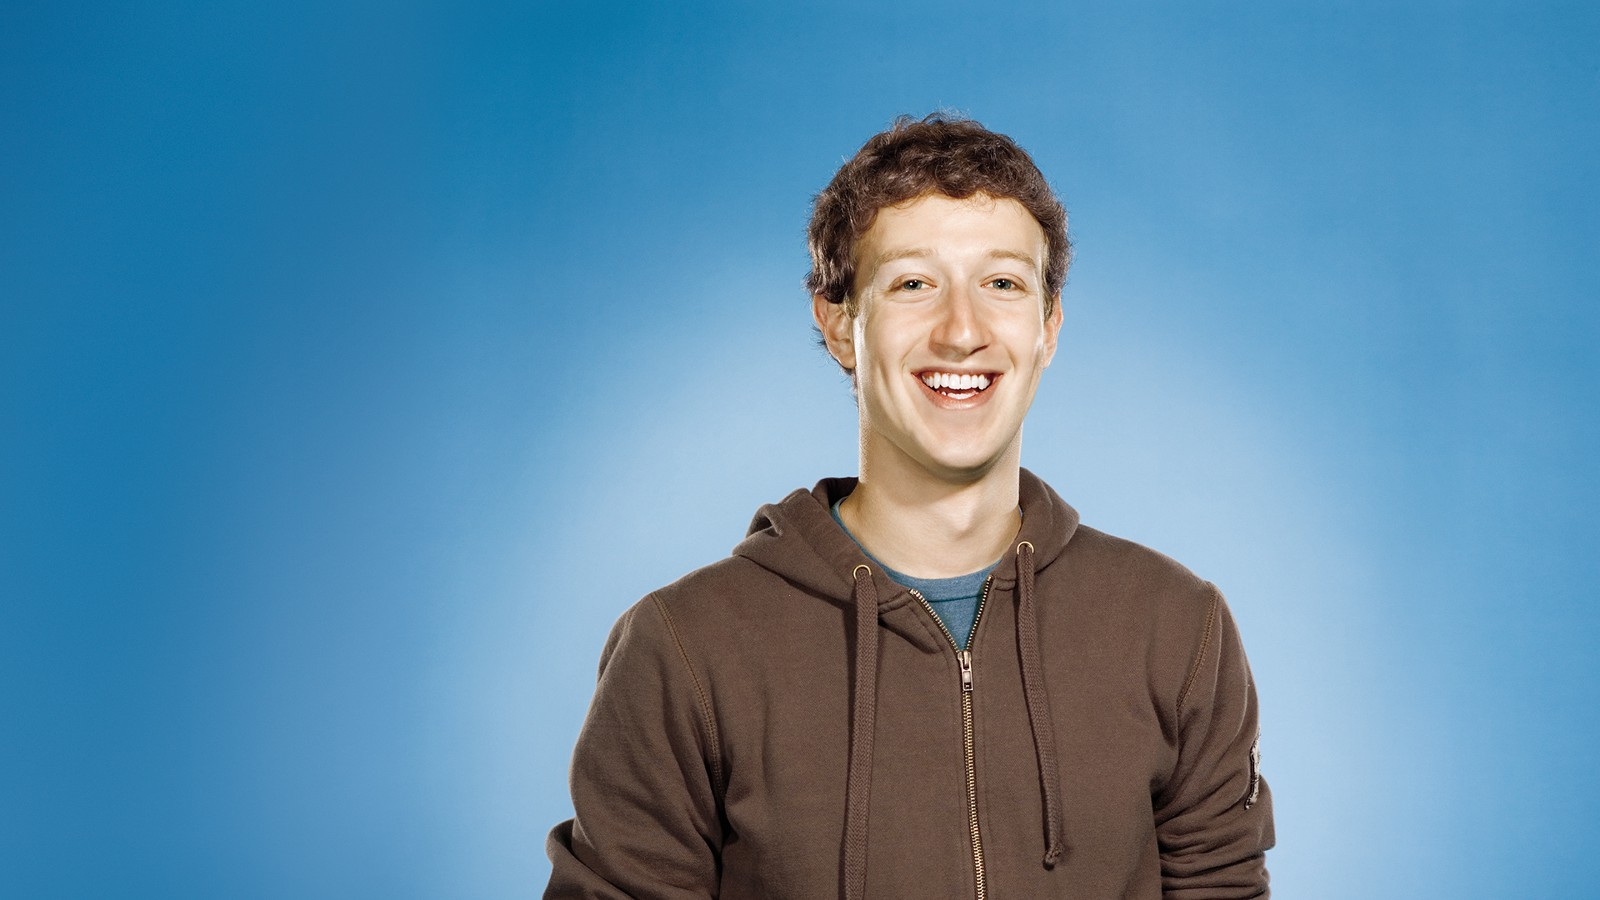 What Mark Zuckerbergs Hoodie And Your Personal Brand Have In Common